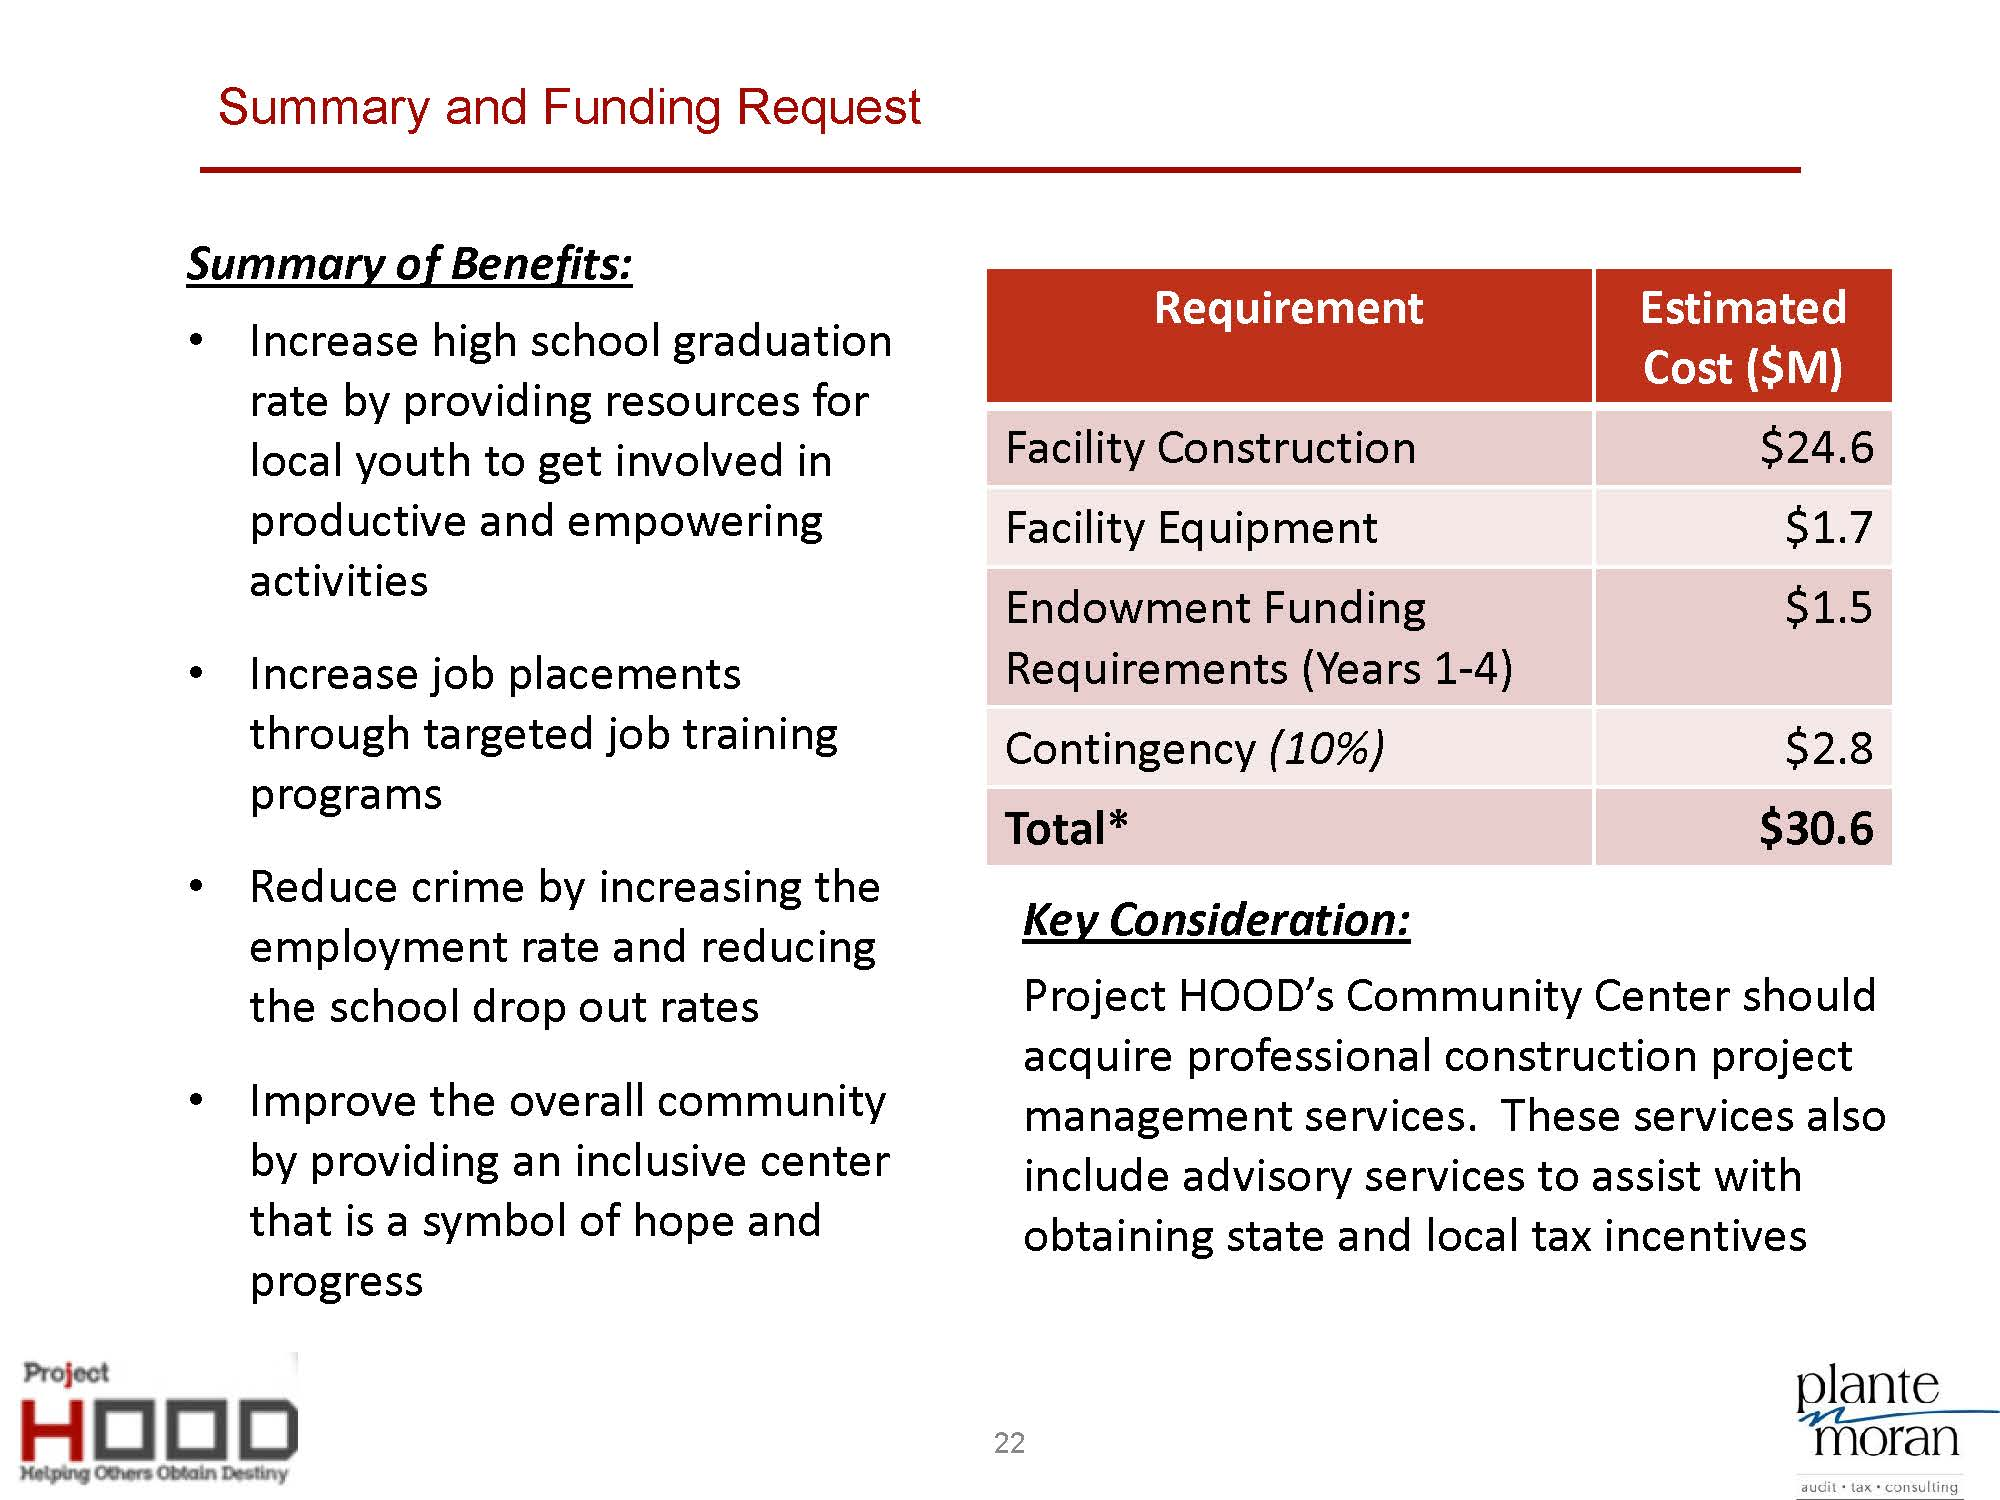 Project HOOD Community Center Business Plan_8-5_Page_22.jpg